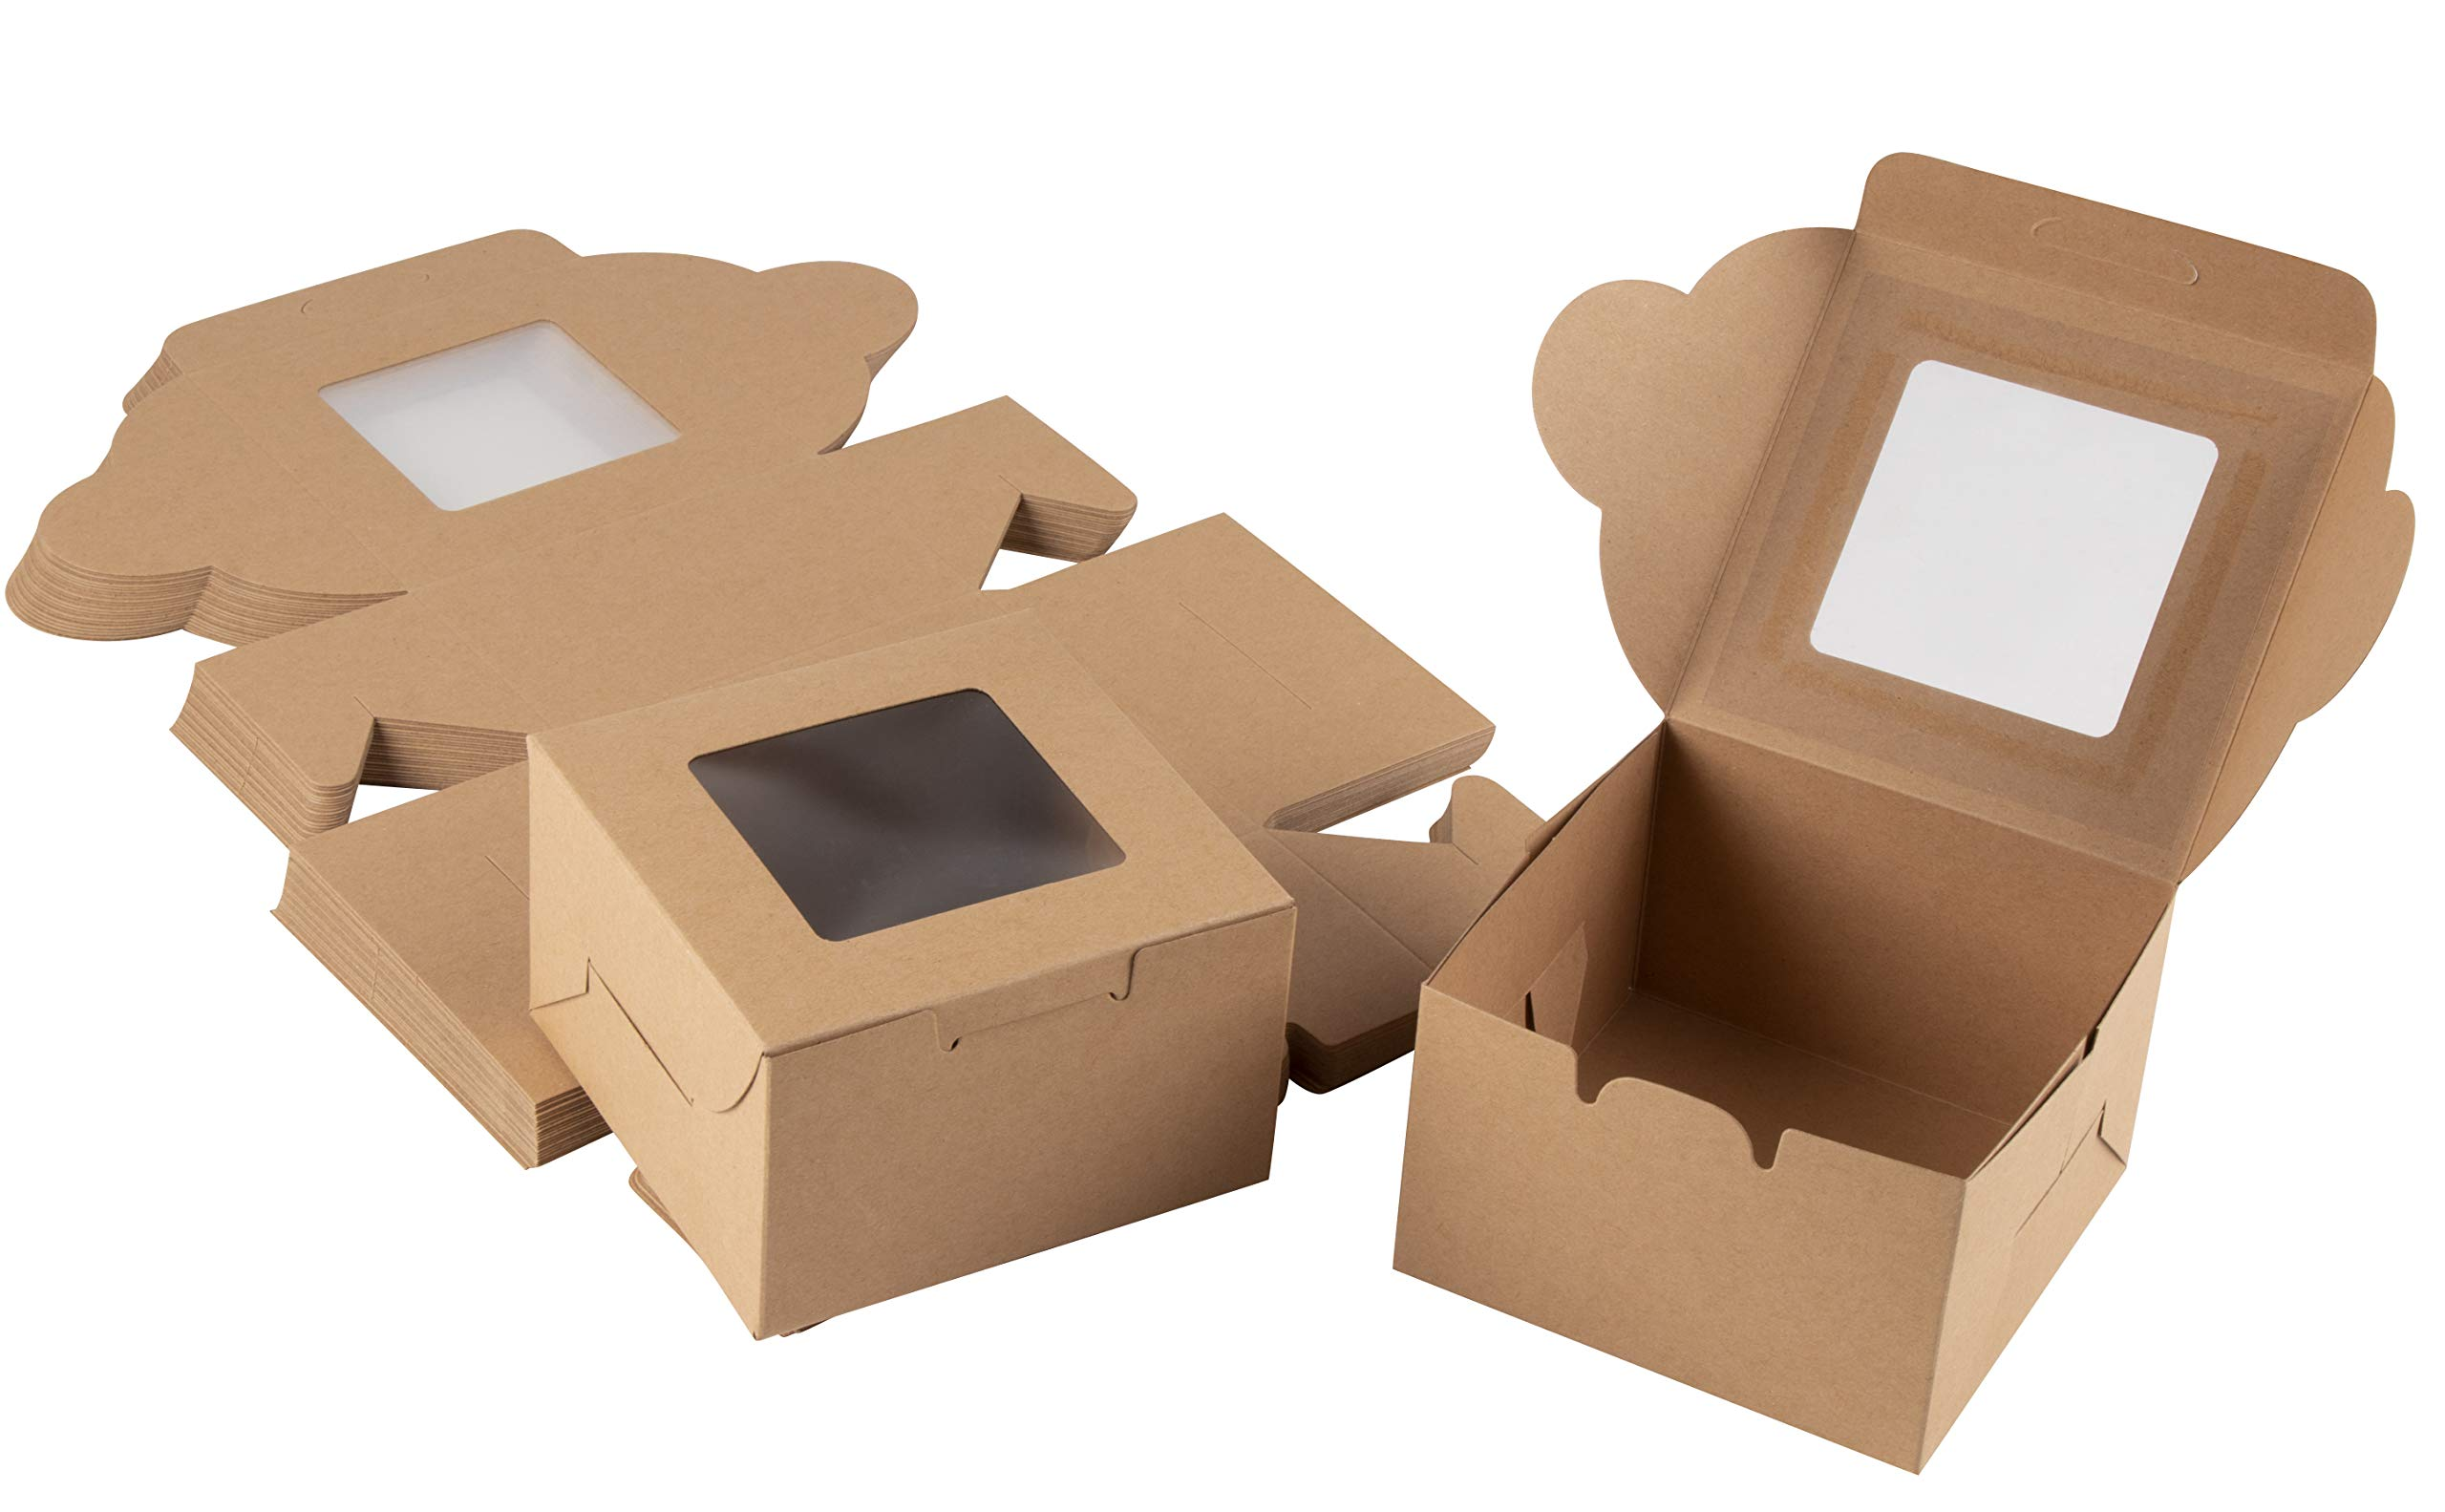 Kraft Paper Bakery Boxes - 50-Pack Single Pastry Box 4-Inch Packaging with Clear Display Window, Donut, Mini Cake, Pie Slice, Dessert Disposable Take-Out Container, Holds 1, Brown, 4 x 2.3 x 4 Inches by Juvale (Image #1)